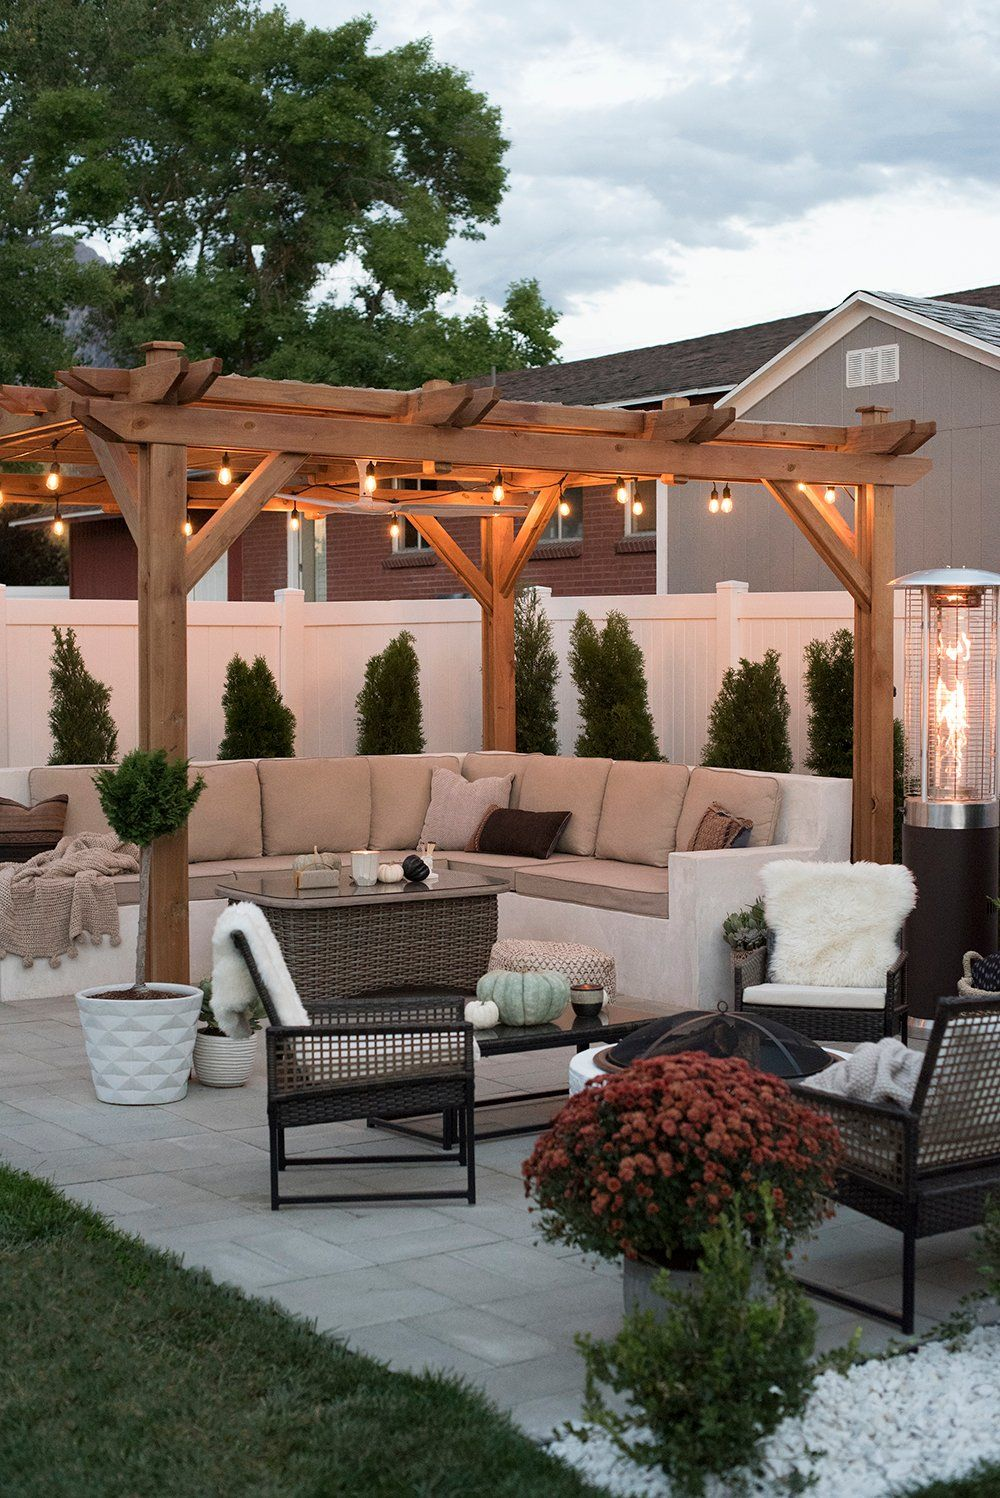 Transitioning the Backyard for Fall - Room for Tuesday Blog #pergolapatio